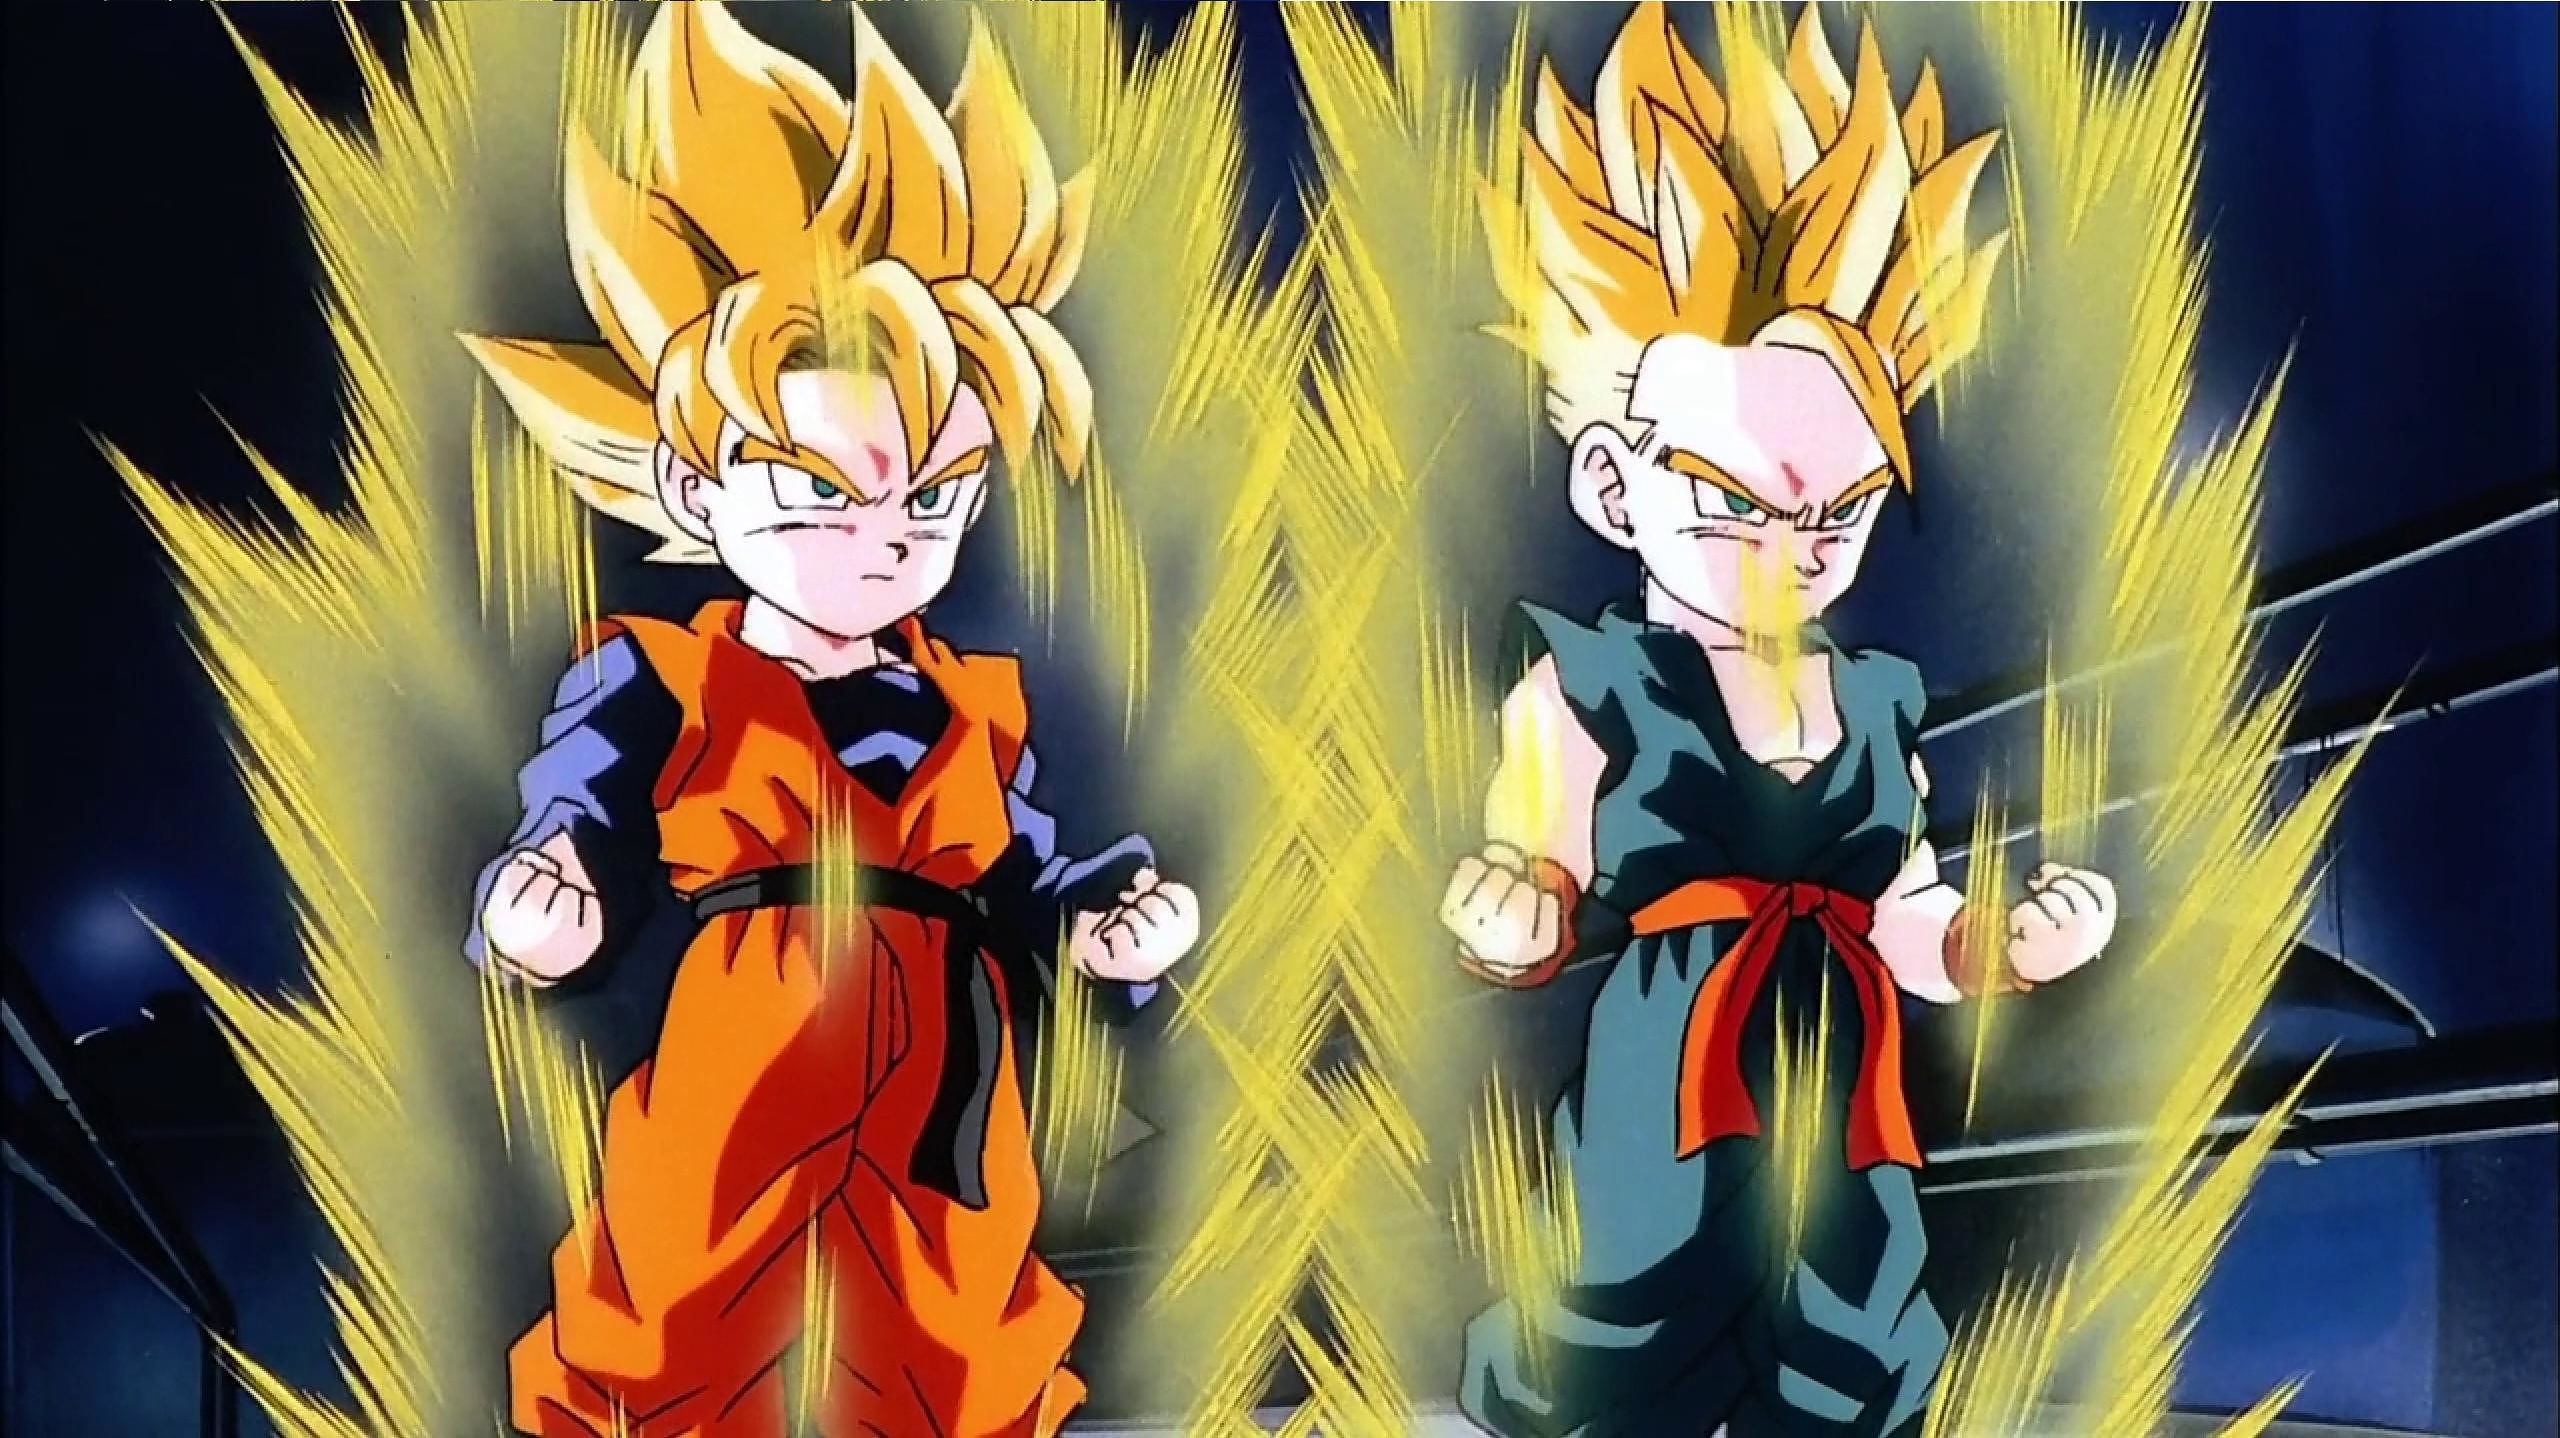 Res: 2560x1438, DBZ Fanfiction images Dragonball Z HD wallpaper and background ... - HD  Wallpapers